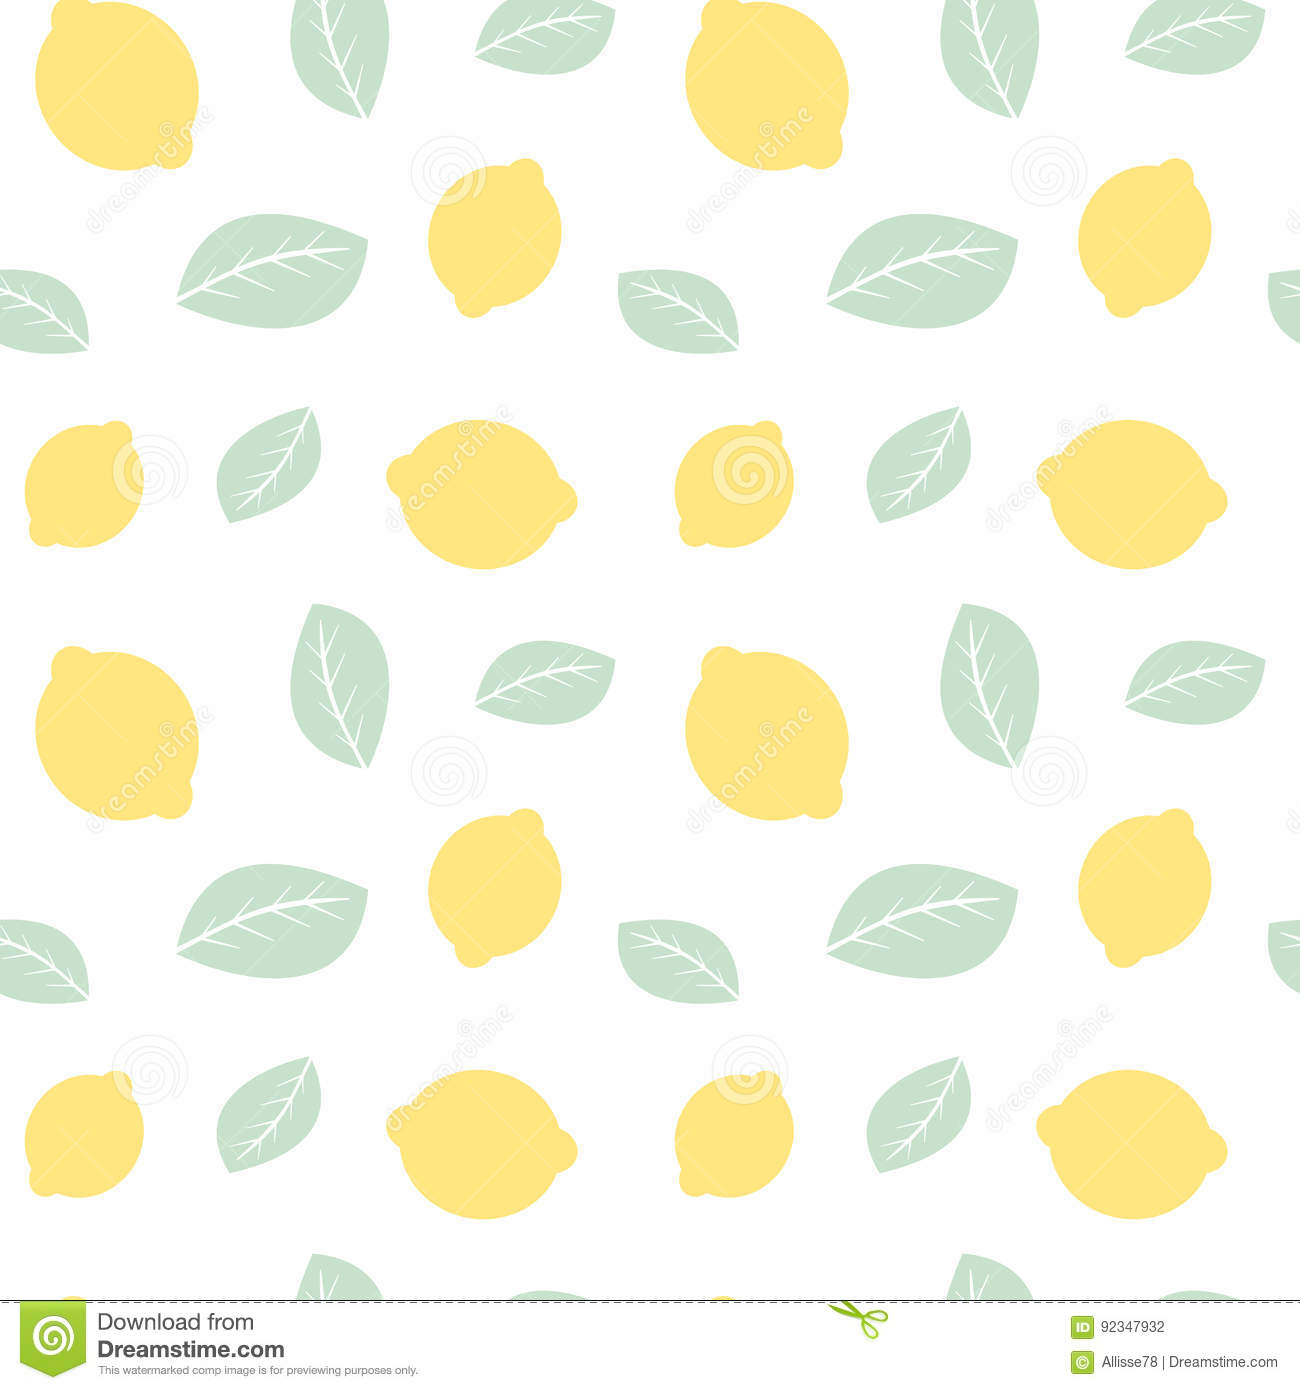 Cute Pastel Lemons And Leaves Seamless Pattern Background